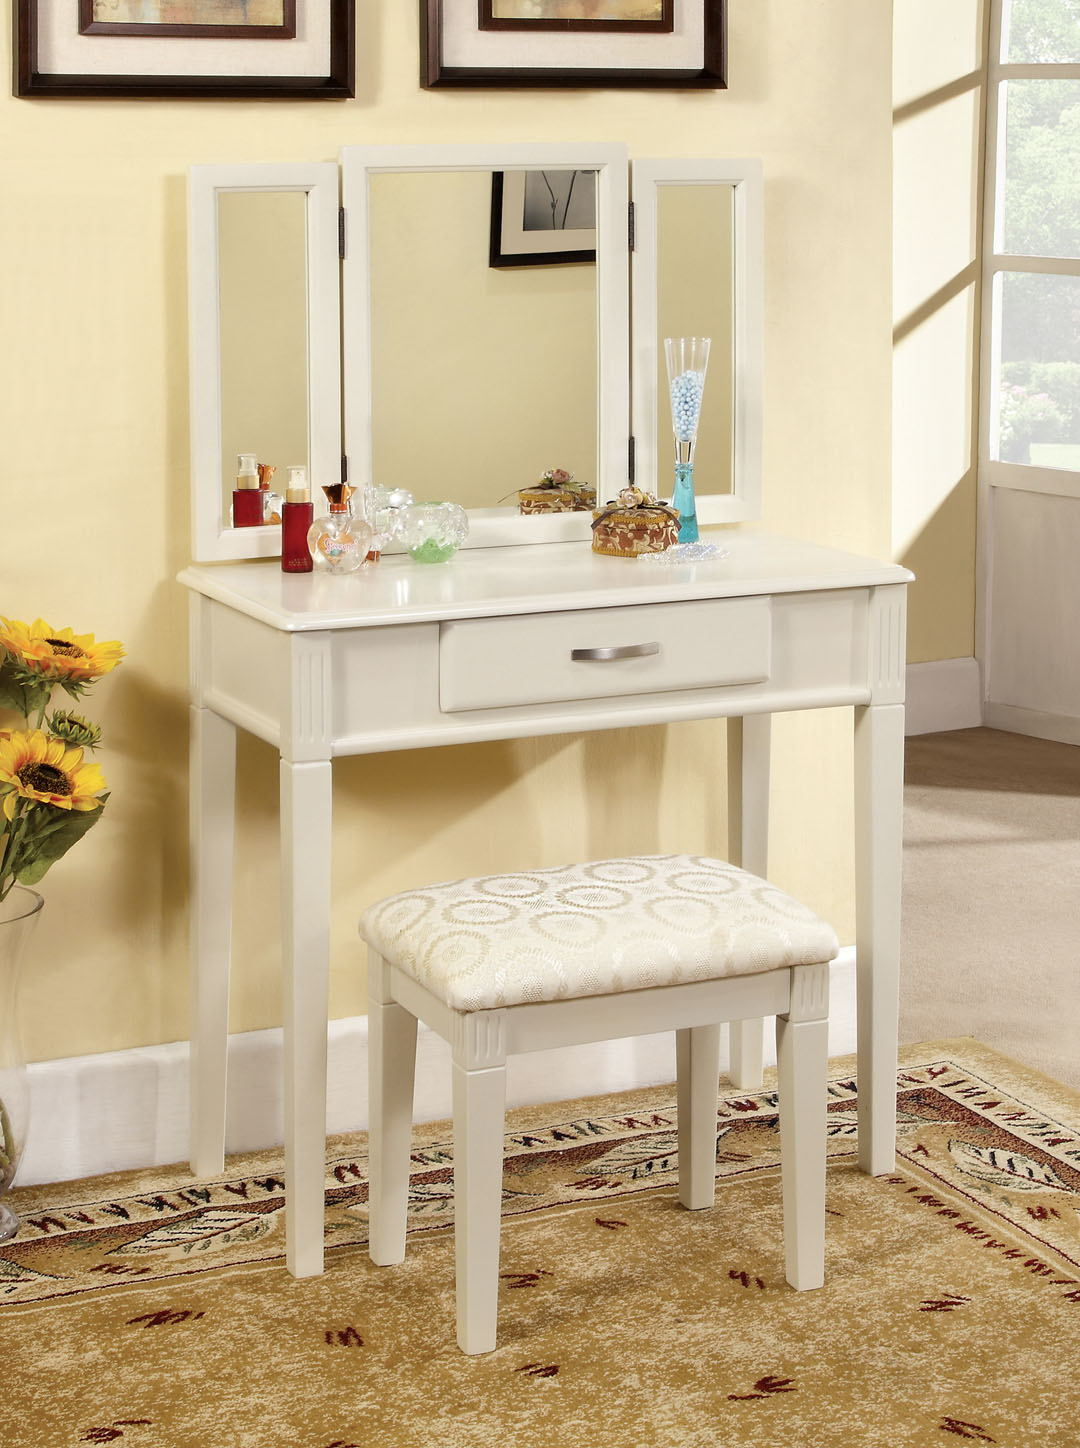 3 pc potterville white finish wood bedroom make up vanity sitting table set with tri fold mirror